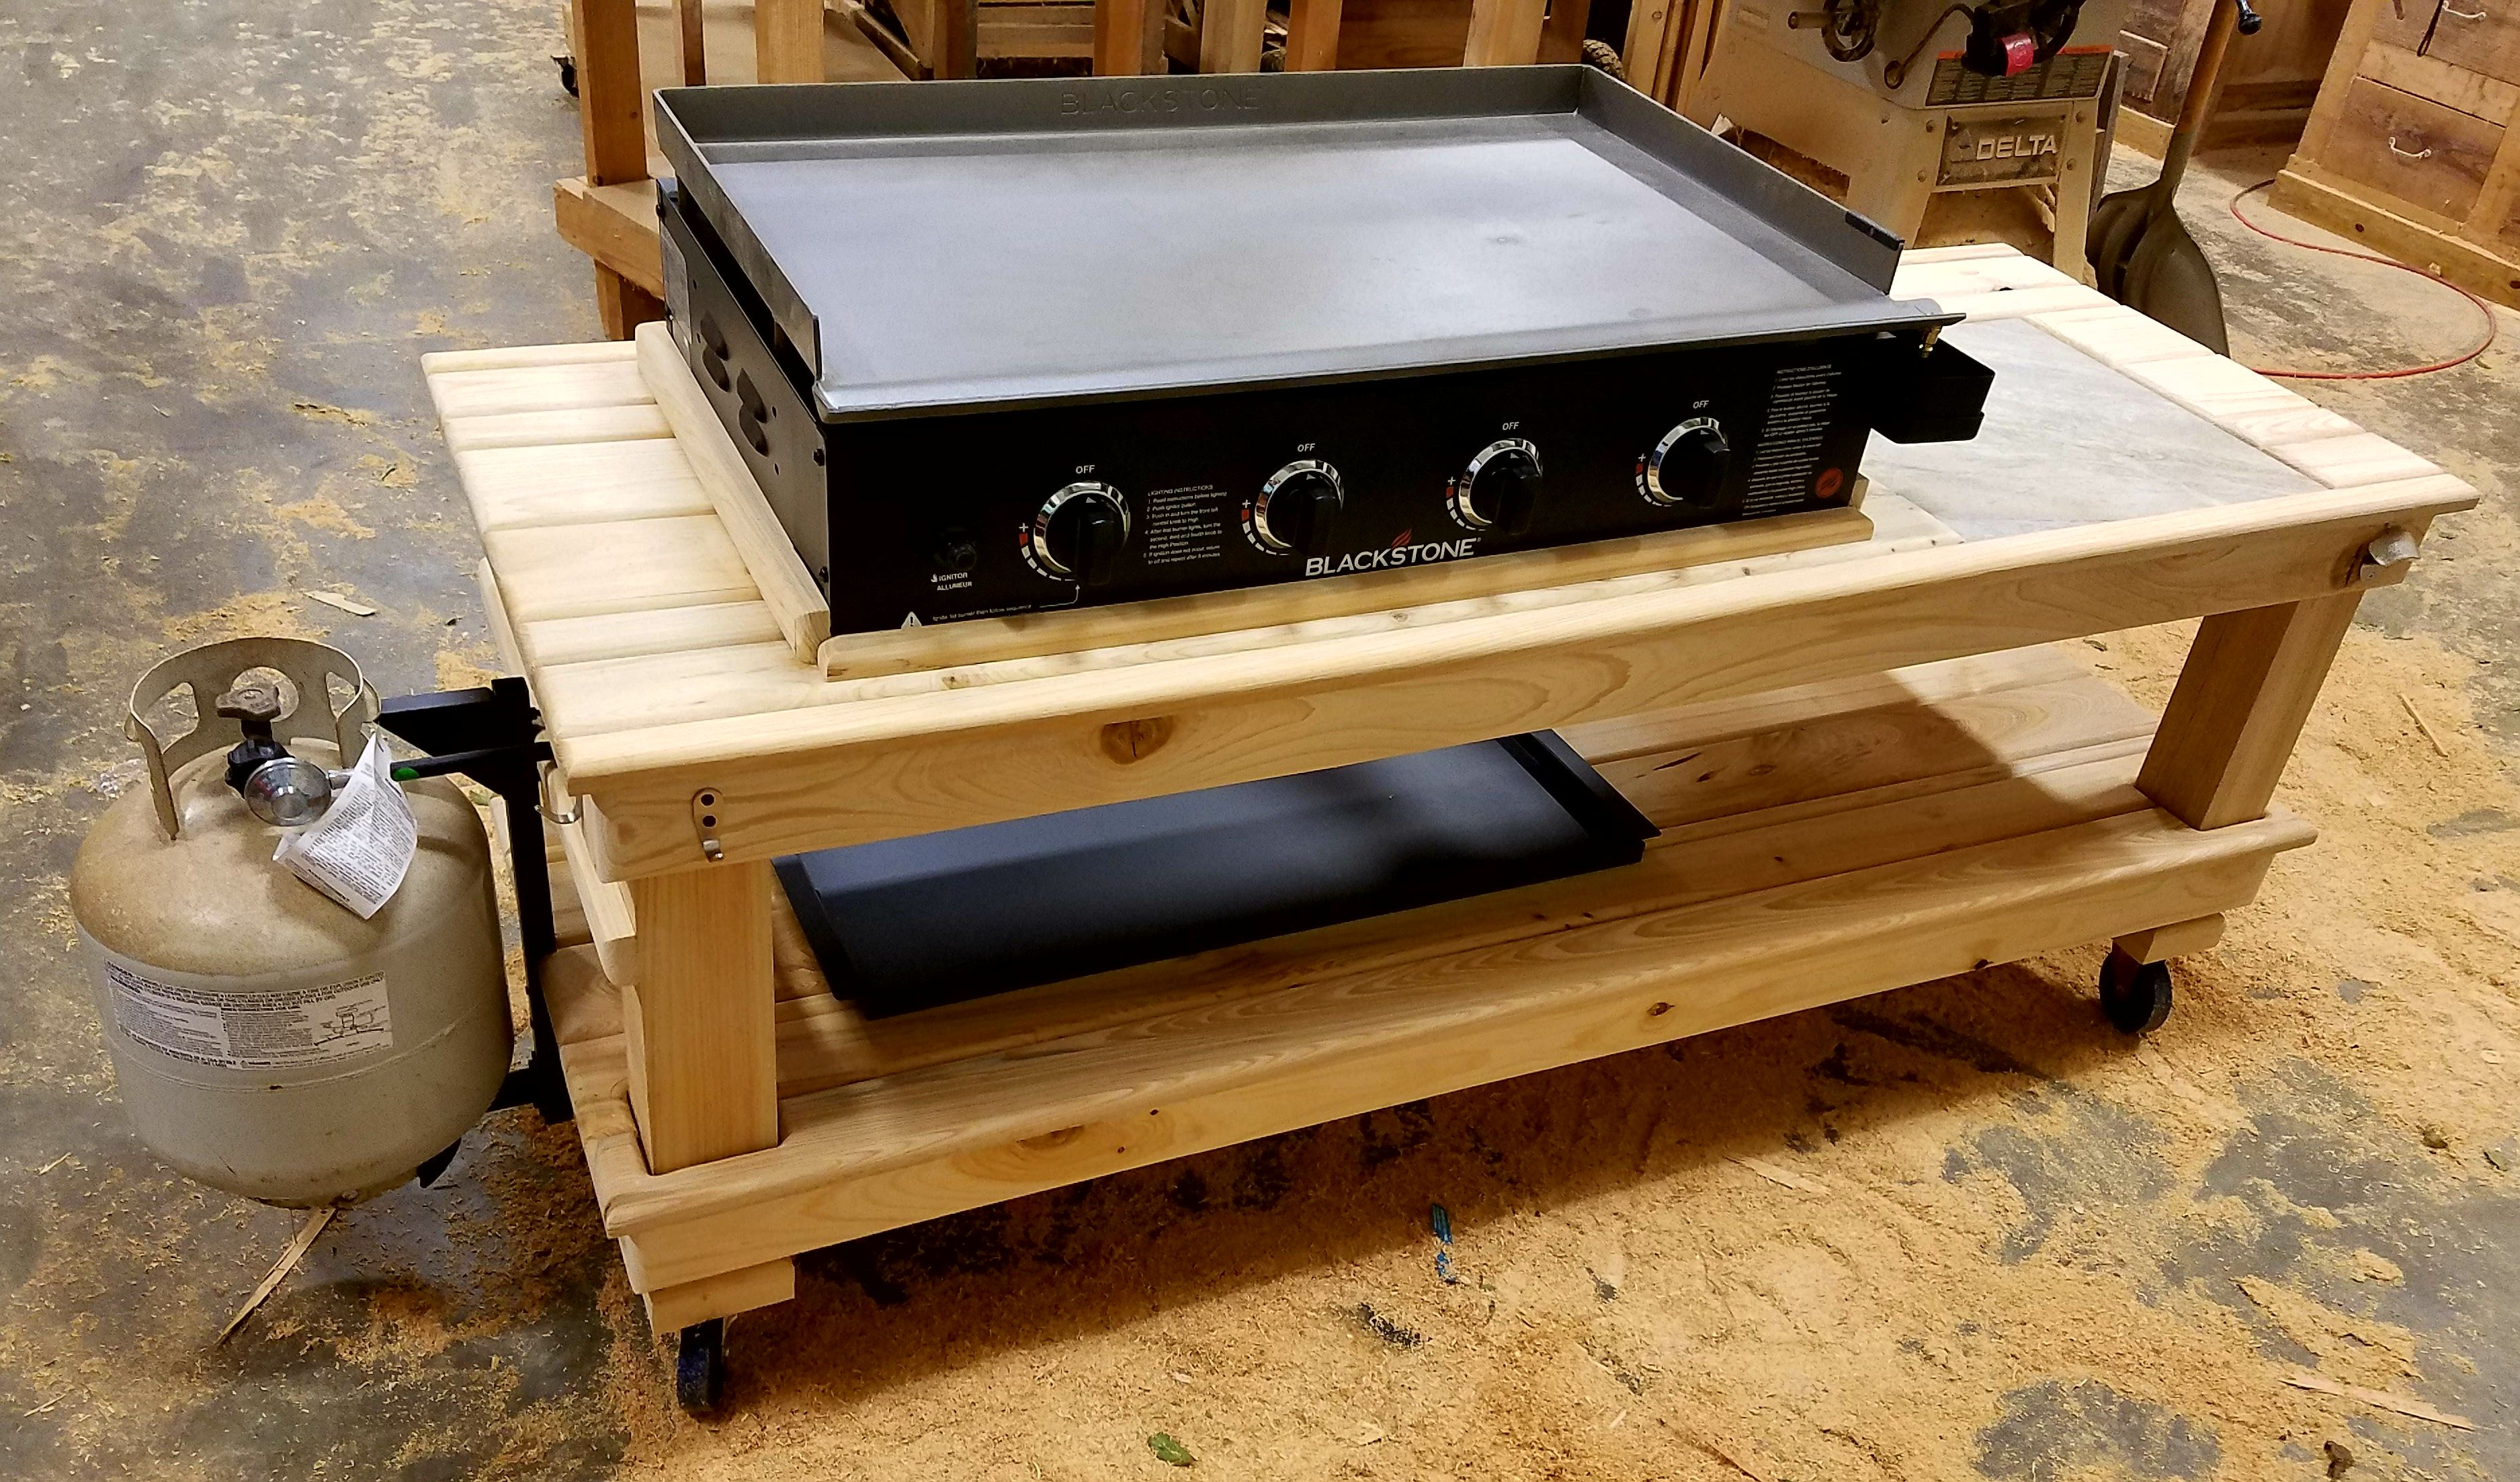 Griddle Table Grill Table Outdoor Bbq Kitchen Blackstone Griddle